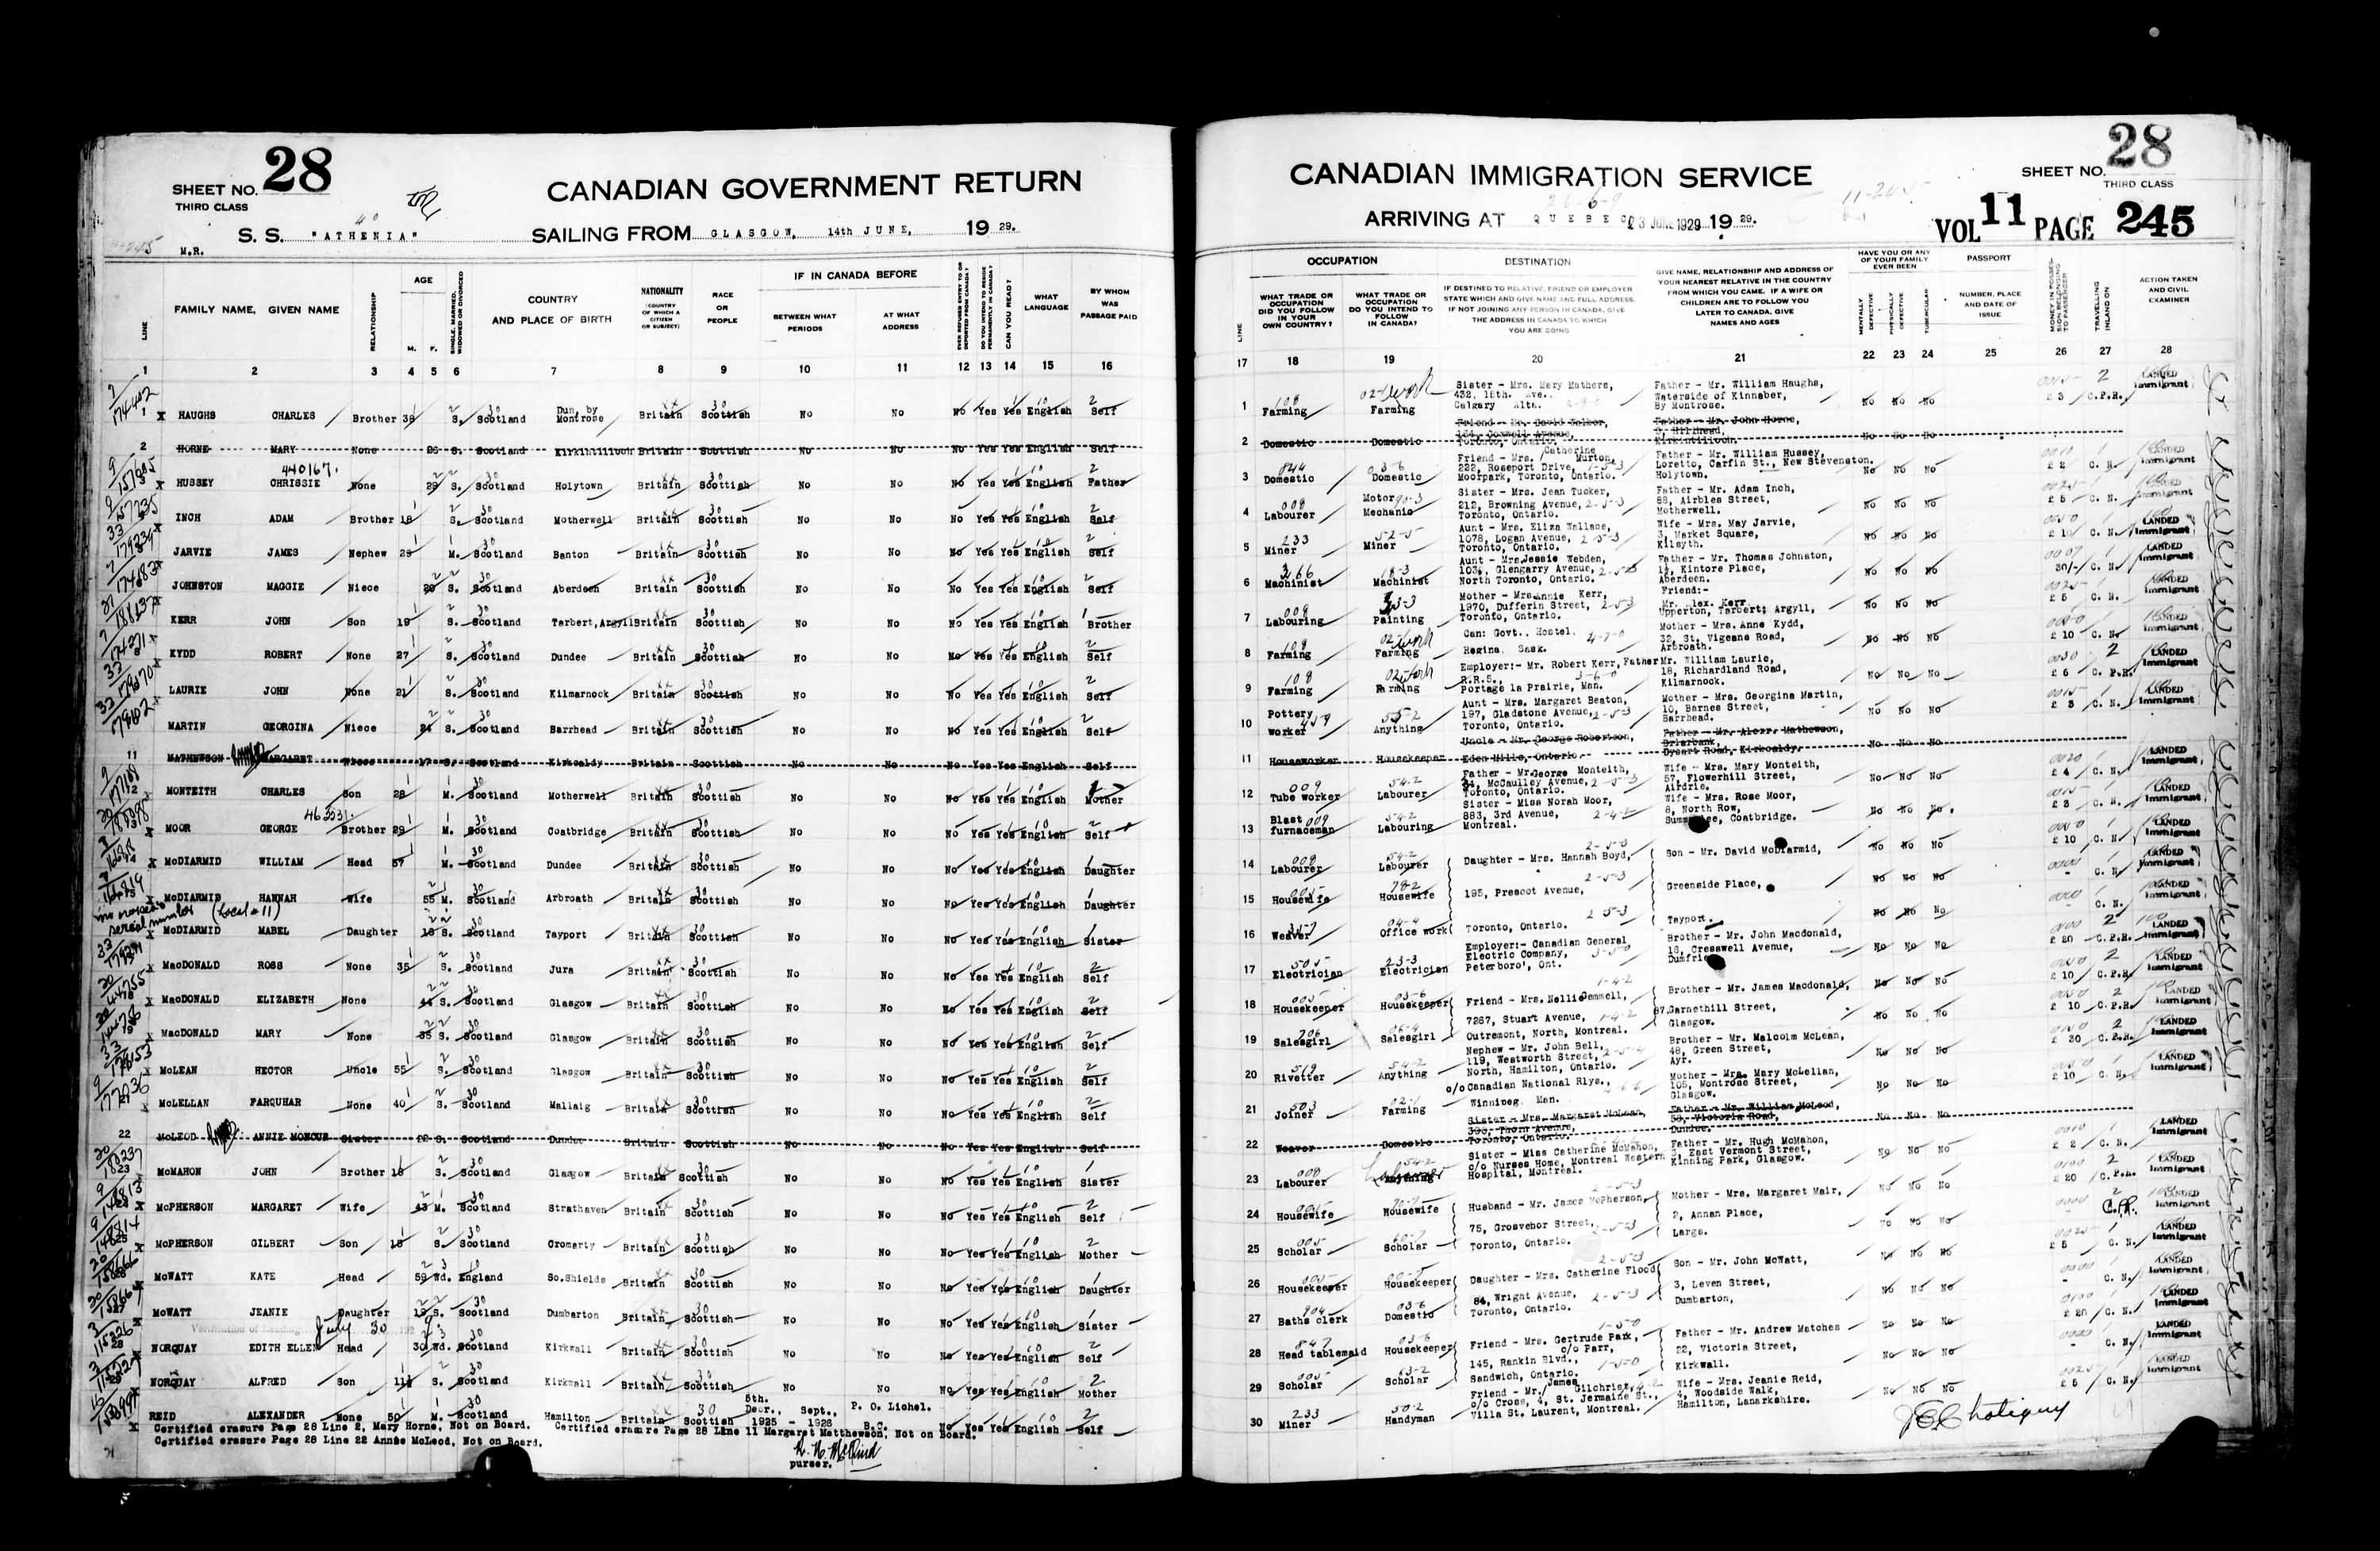 Title: Passenger Lists: Quebec City (1925-1935) - Mikan Number: 134839 - Microform: t-14755